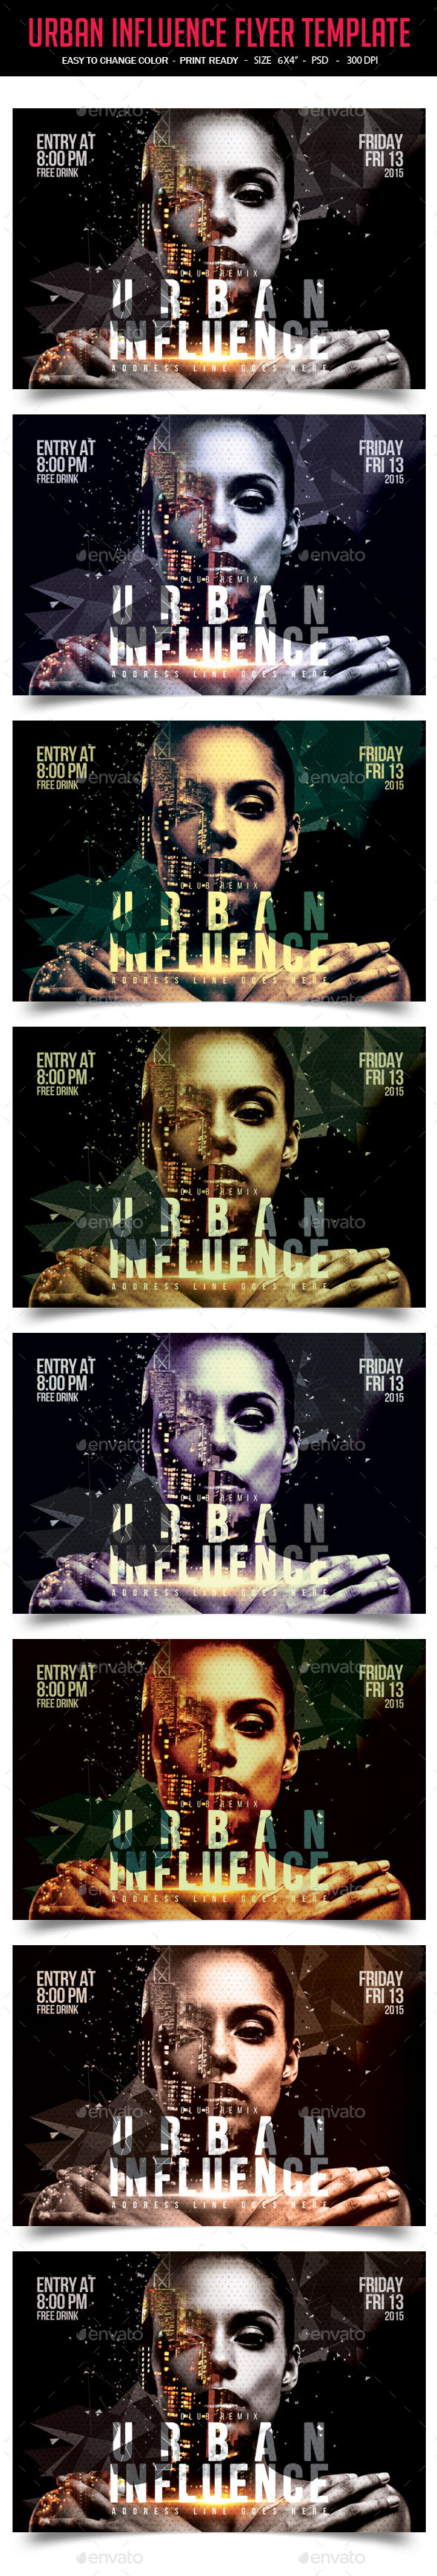 Urban Influence Party Flyer Template - Clubs & Parties Events